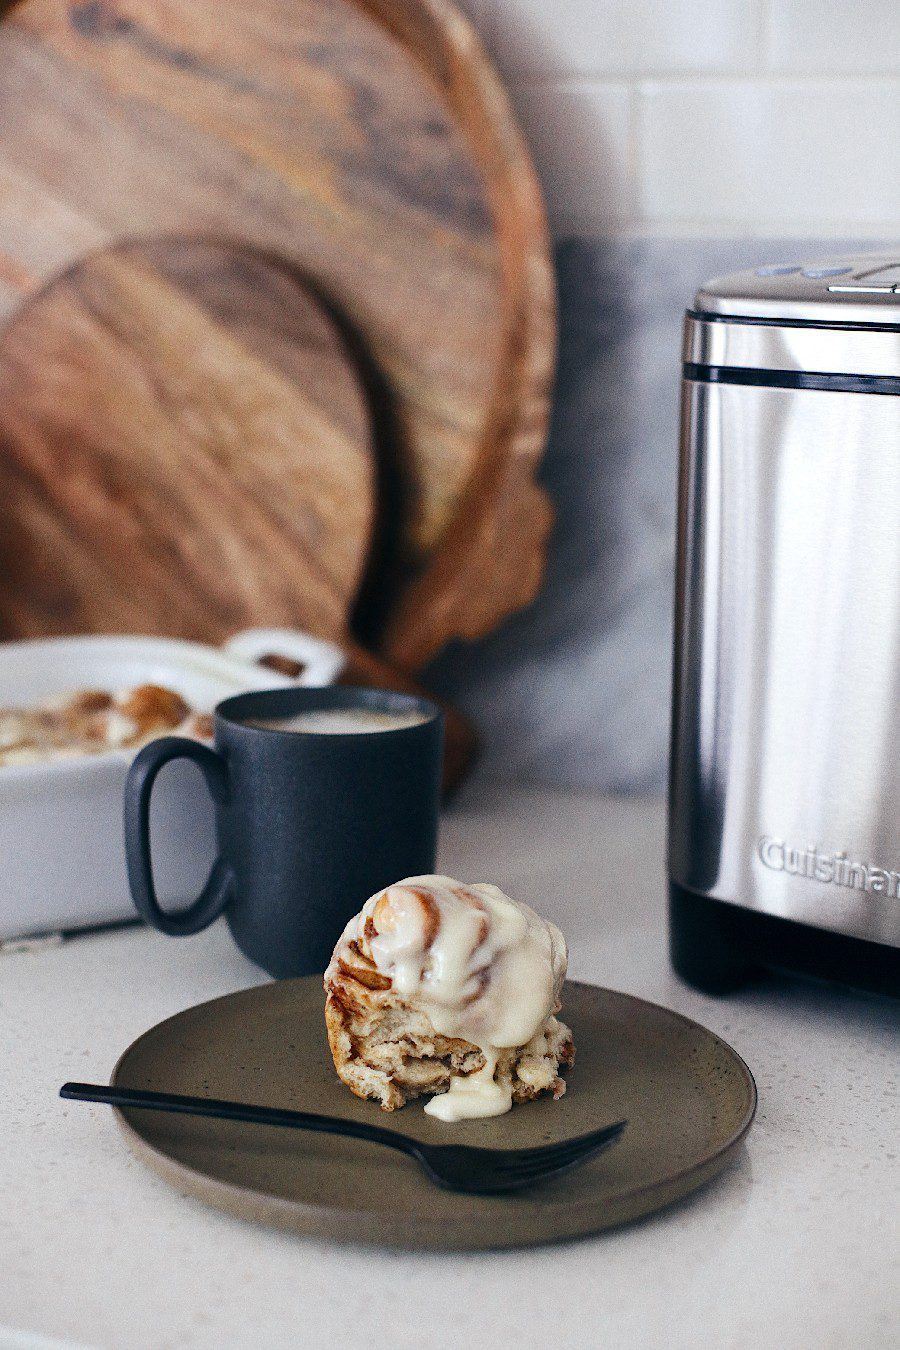 Easy bread machine cinnamon rolls dough. The best gooey sticky buns and clone of a Cinnabon roll icing! NO waiting overnight. Click for the recipe and how to video for fluffy cinnamon rolls homemade with a bread maker machine! Use all purpose flour or make them gluten free. Recipe from top Florida lifestyle blogger Tabitha Blue of Fresh Mommy Blog. | Bread Machine Cinnamon Roll Recipe by popular Florida lifestyle blog, Fresh Mommy Blog: image of a cinnamon roll on a grey plate next to some cinnamon rolls in a white ceramic baking dish next to a bowl of cream cheese icing.